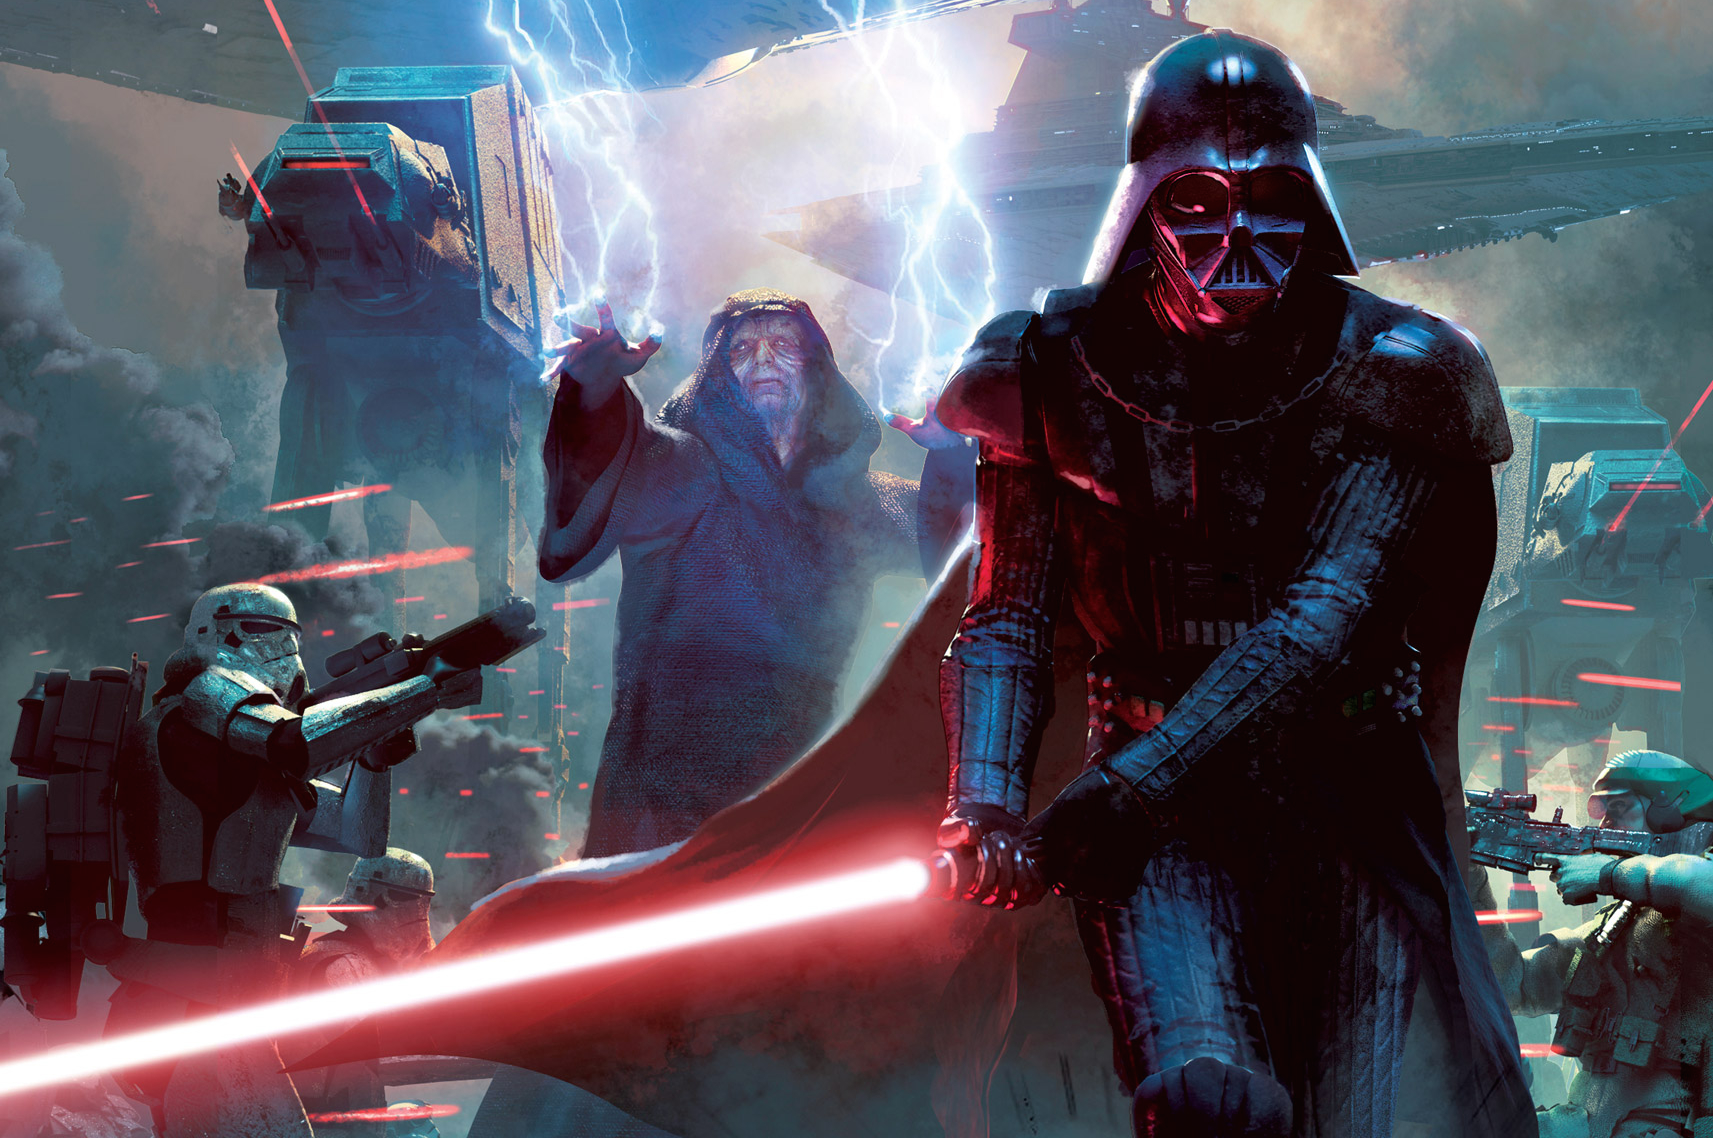 Star Wars Sith Lords Png - Sith Lord | Wookieepedia | FANDOM powered by Wikia